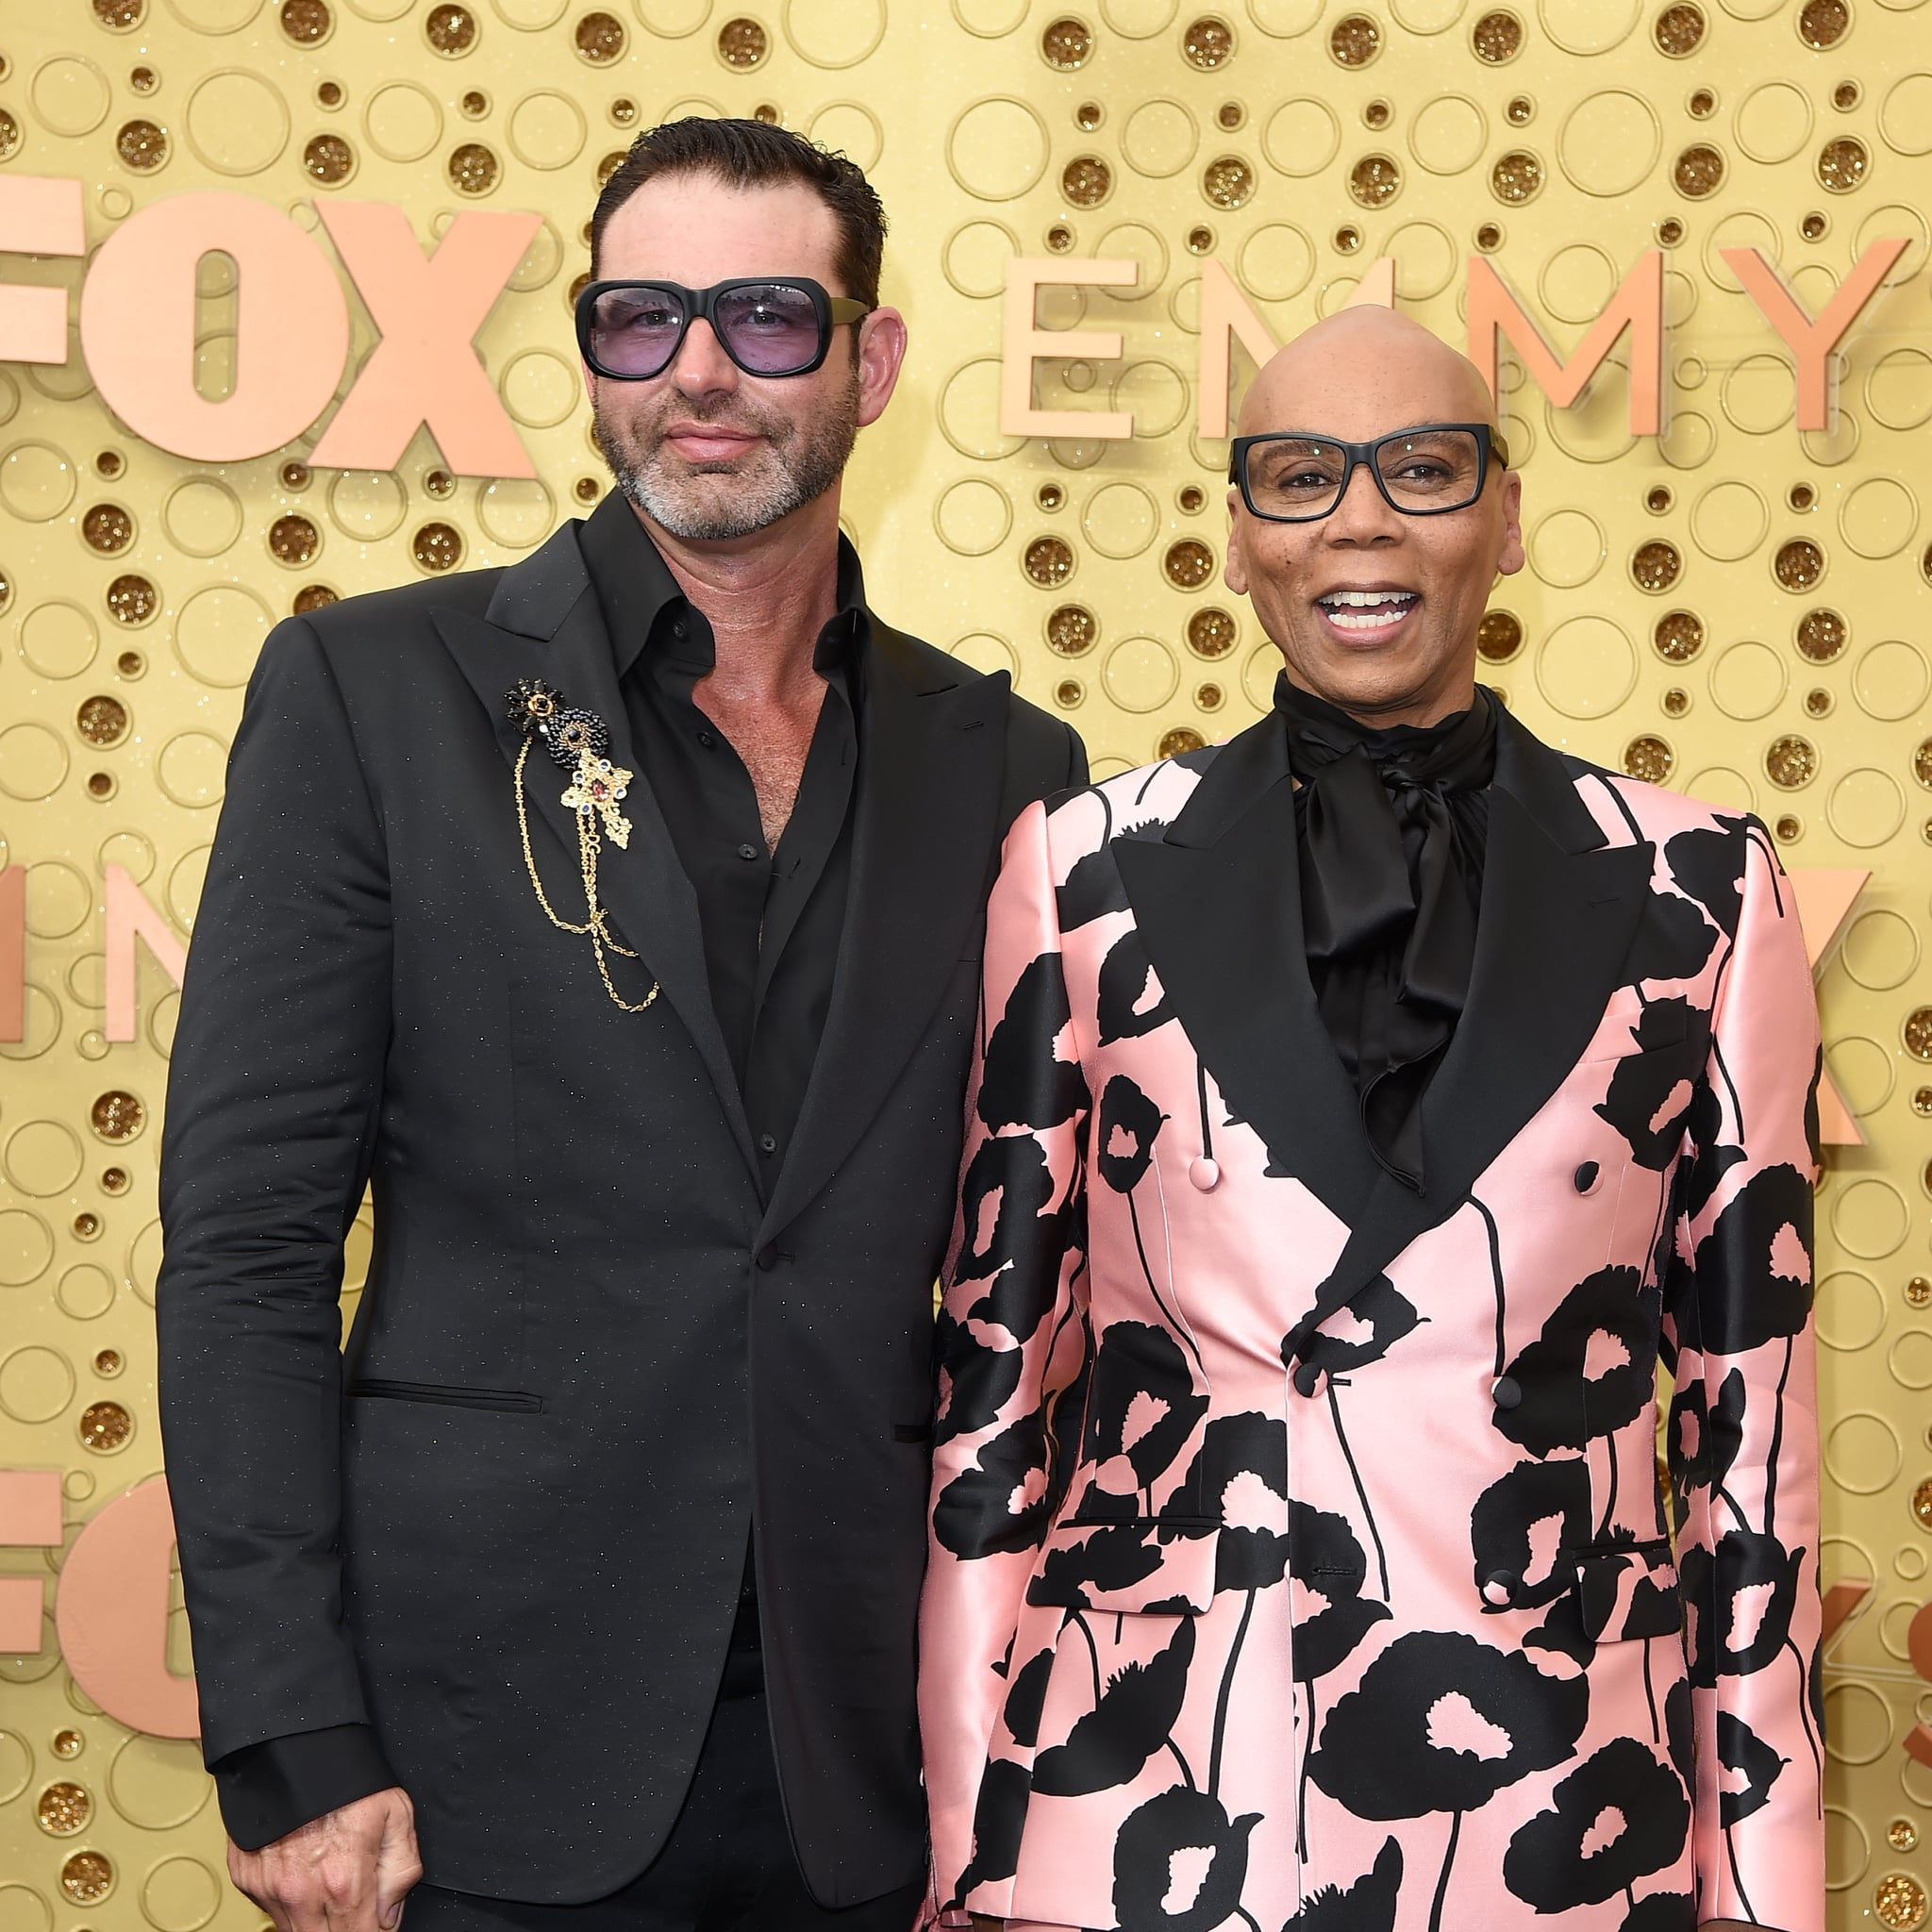 Rupaul S Husband Georges Lebar Has His Own Impressive Career Popsugar Celebrity These two copies can be sticked together by search engines. rupaul s husband georges lebar has his